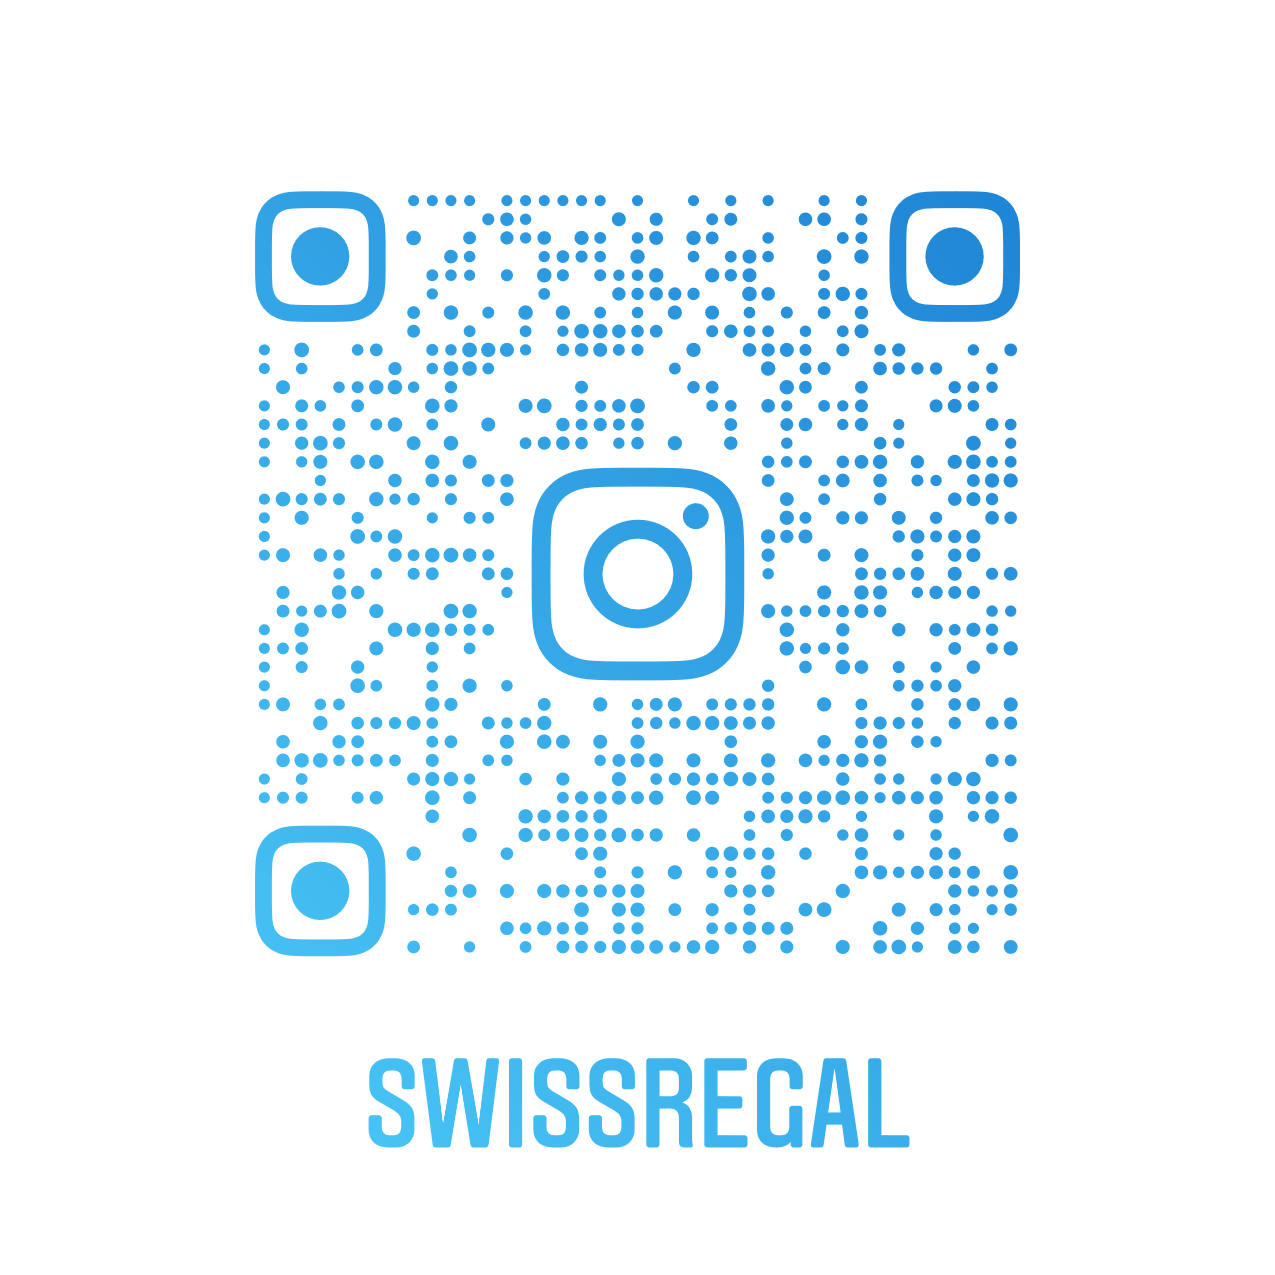 swissregal_nametag